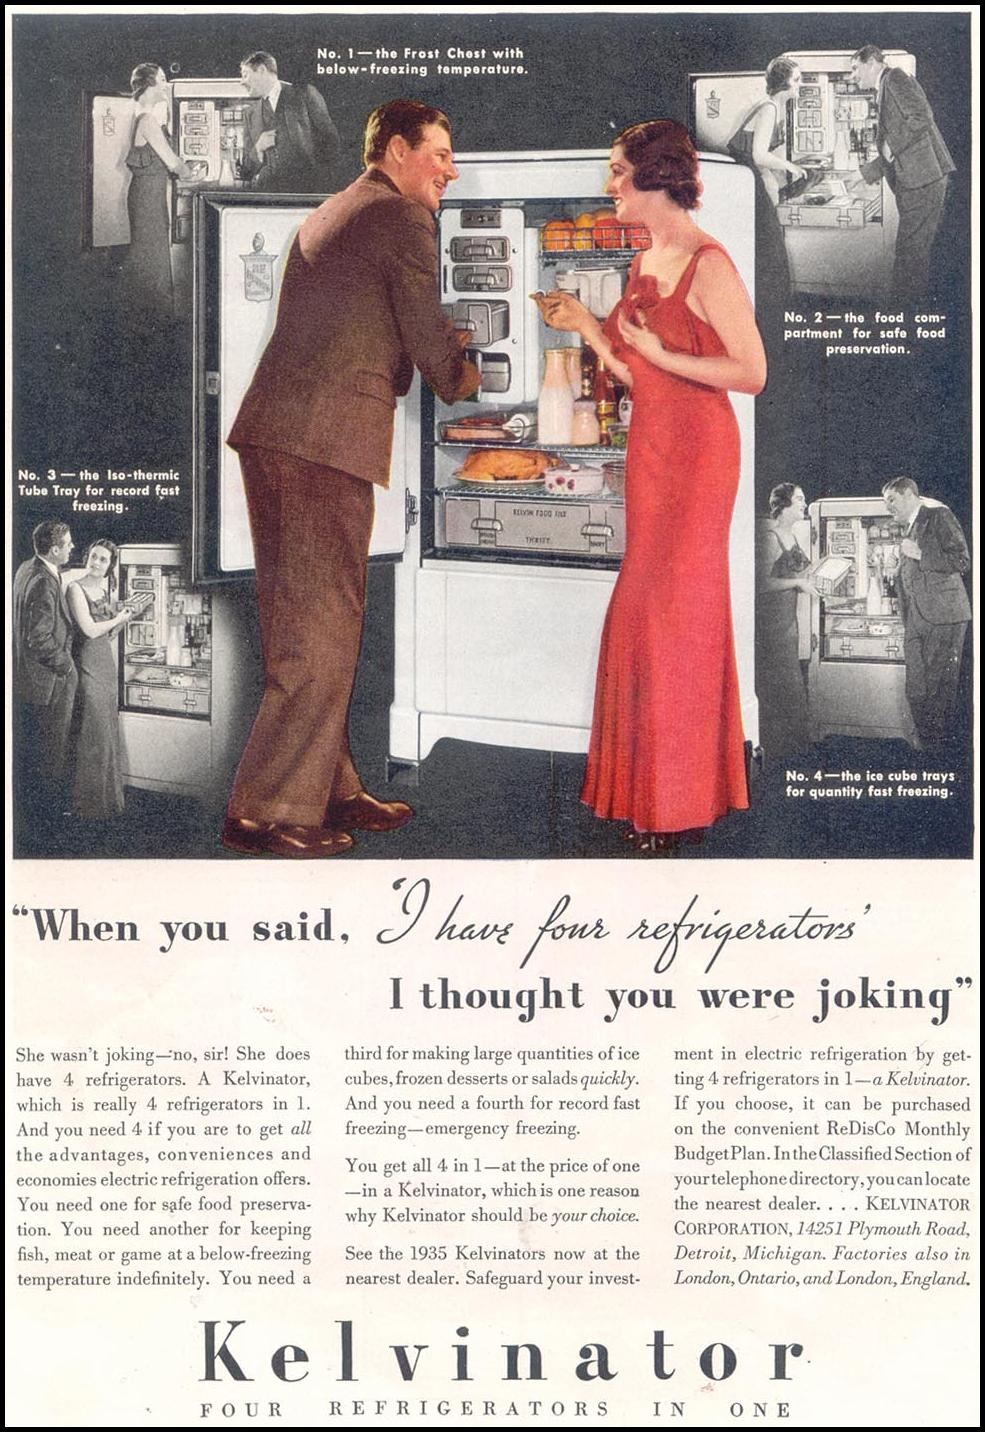 KELVINATOR REFRIGERATORS GOOD HOUSEKEEPING 03/01/1935